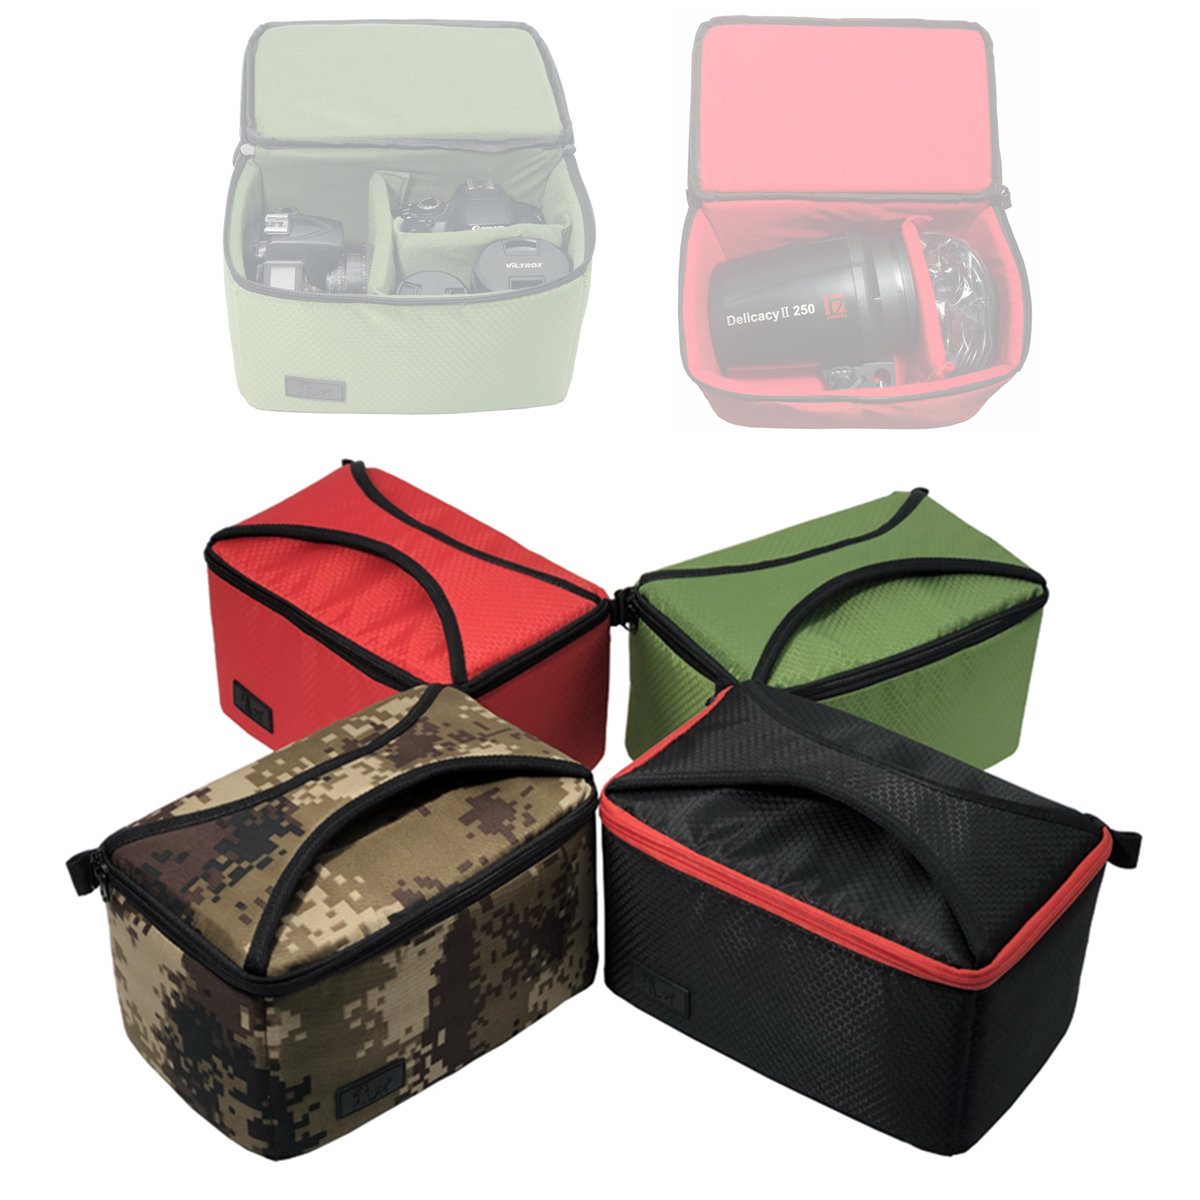 Studio Flash Bag Case for <font><b>Godox</b></font> Mini Pioneer 120 160 200 250DI 300DI K150A <font><b>E300</b></font> E250 AD200 Nice Photo GE250 GY180 Jinbei DII 250 image